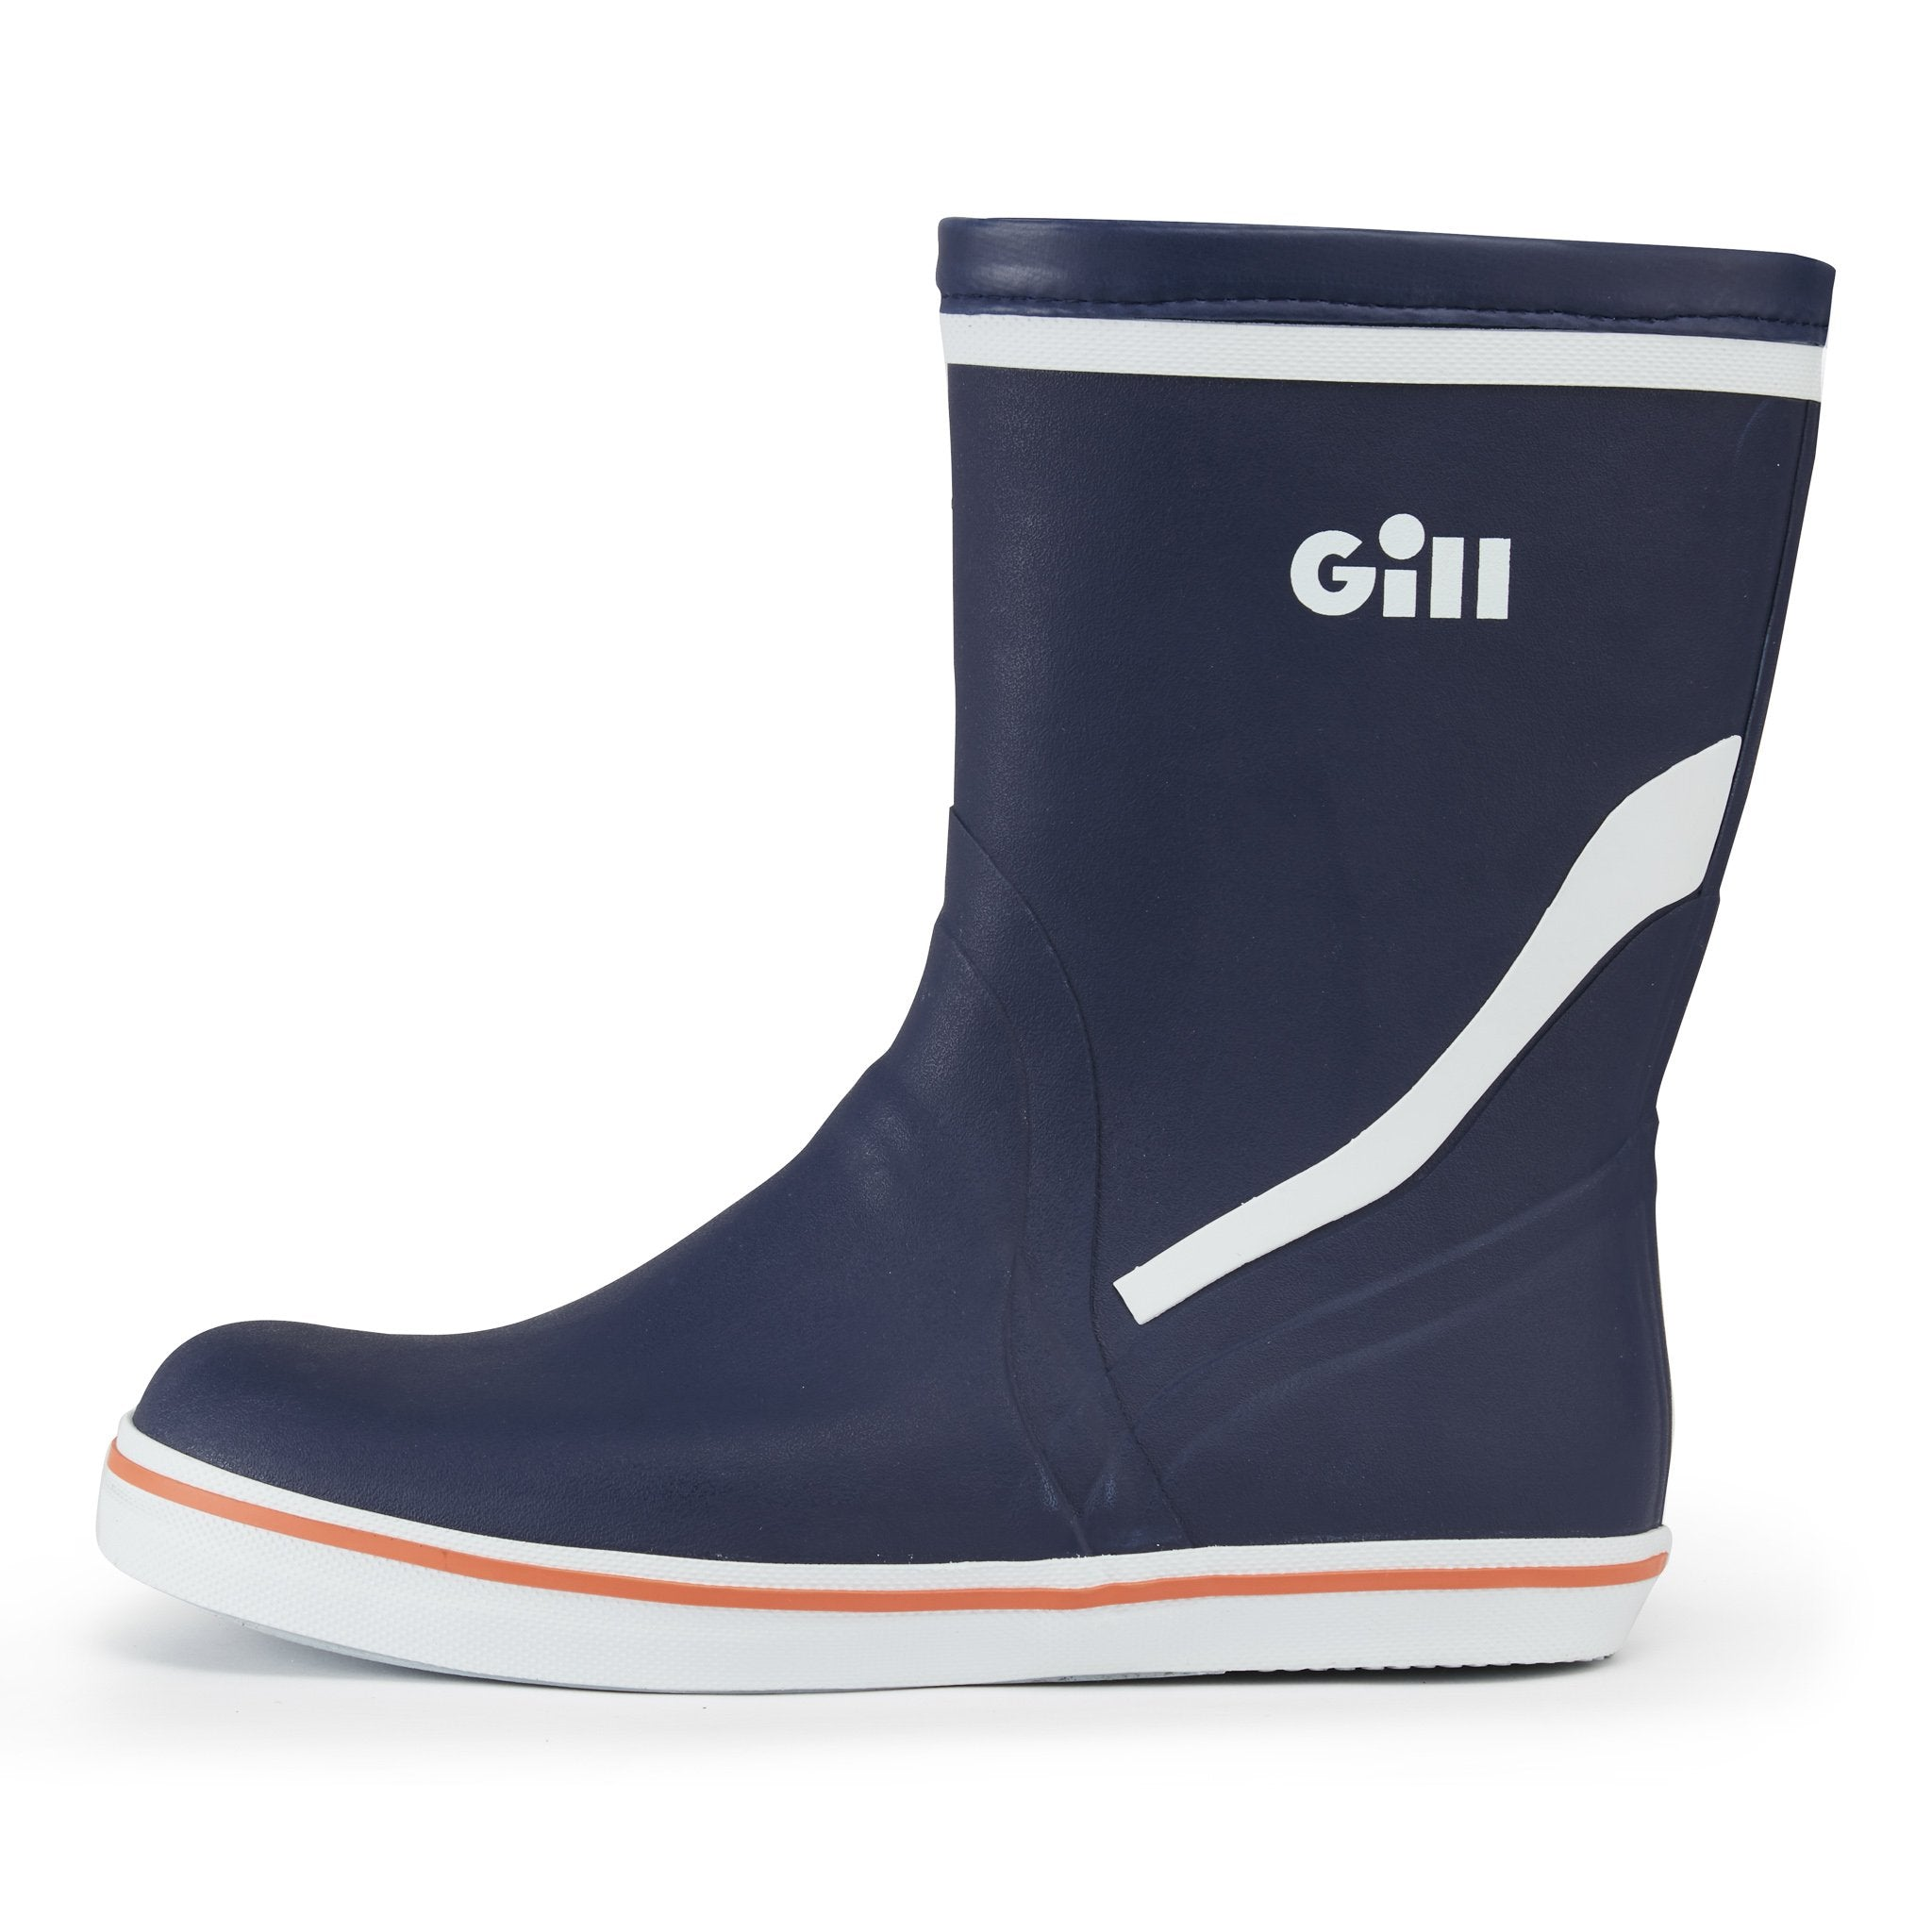 Gill Short Cruising Boot - Arthur Beale